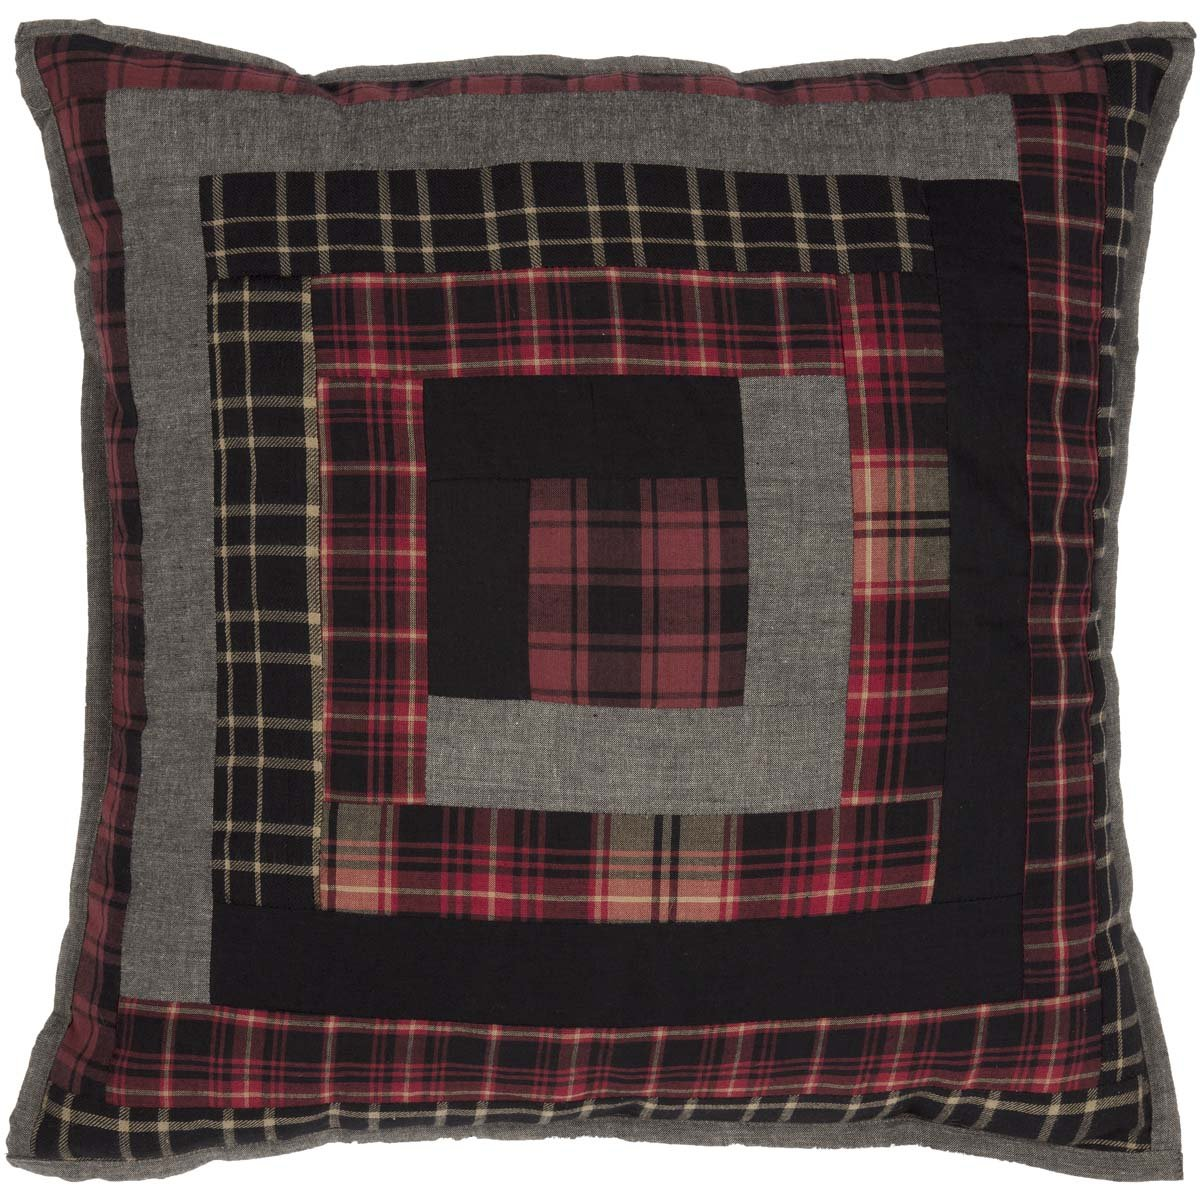 """VHC Brands Rustic & Lodge Pillows & Throws-Cumberland Red Patchwork 18"""" x 18"""""""